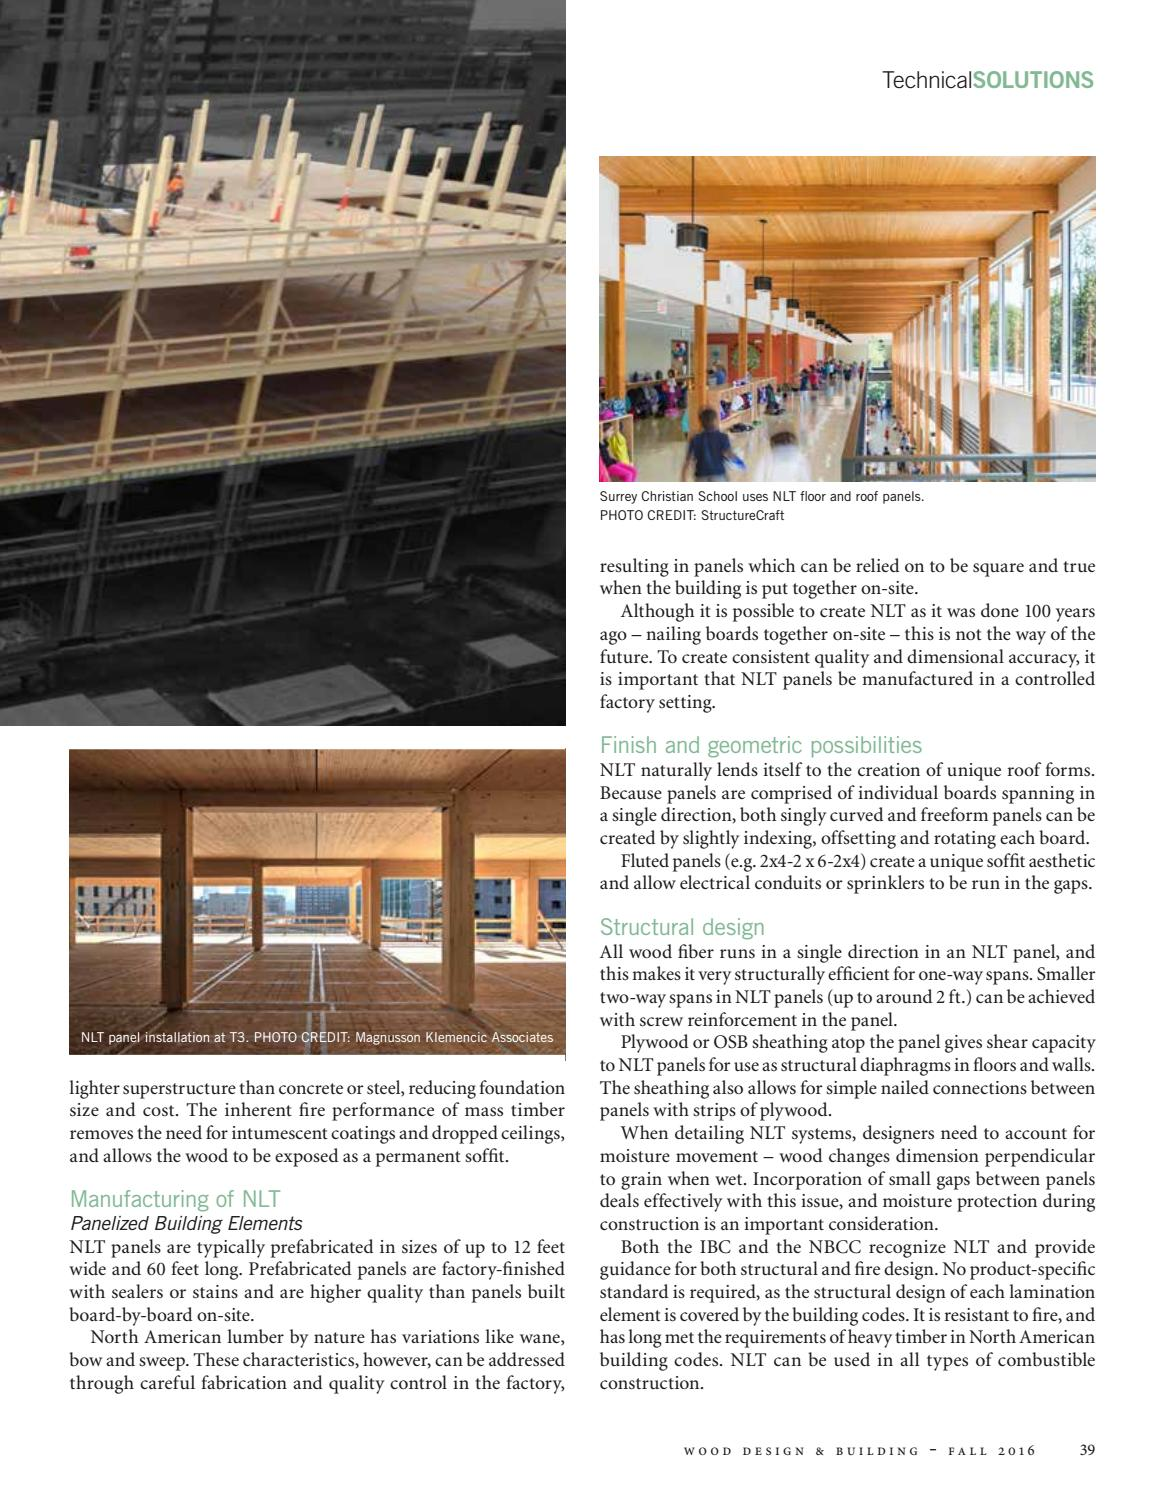 Wood Design & Building Fall 2016 by Dovetail Communications